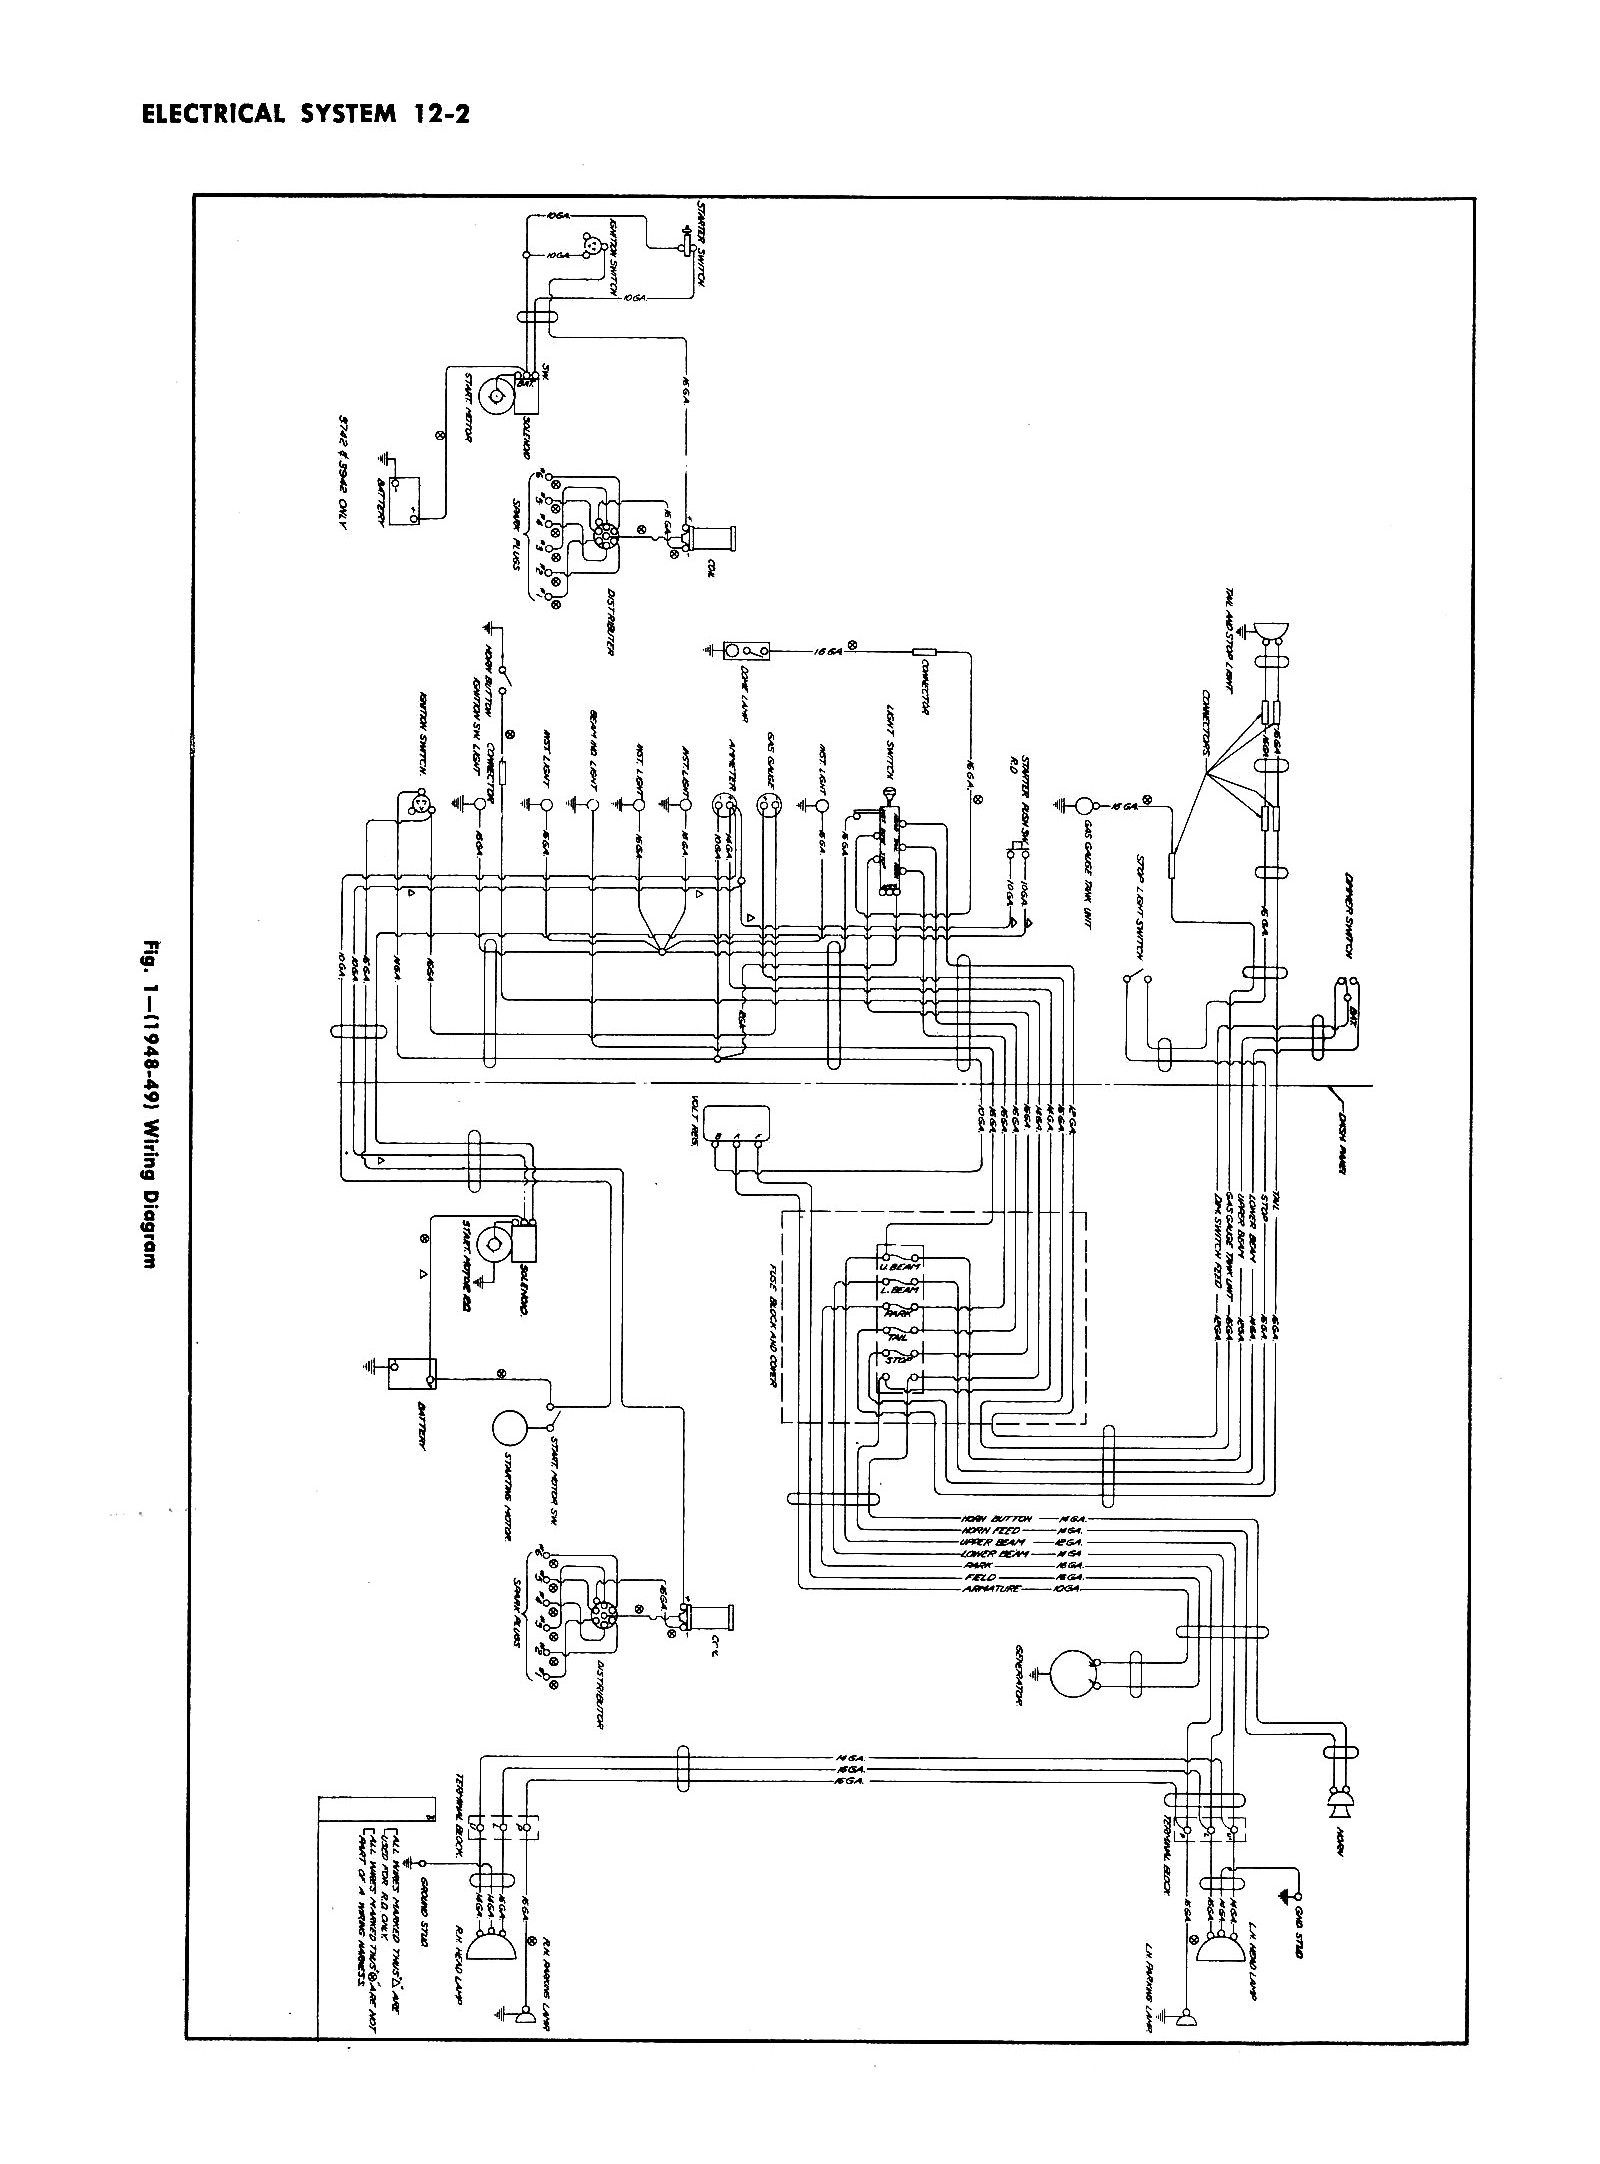 48car chevy wiring diagrams 1996 chevy truck wiring diagram at soozxer.org